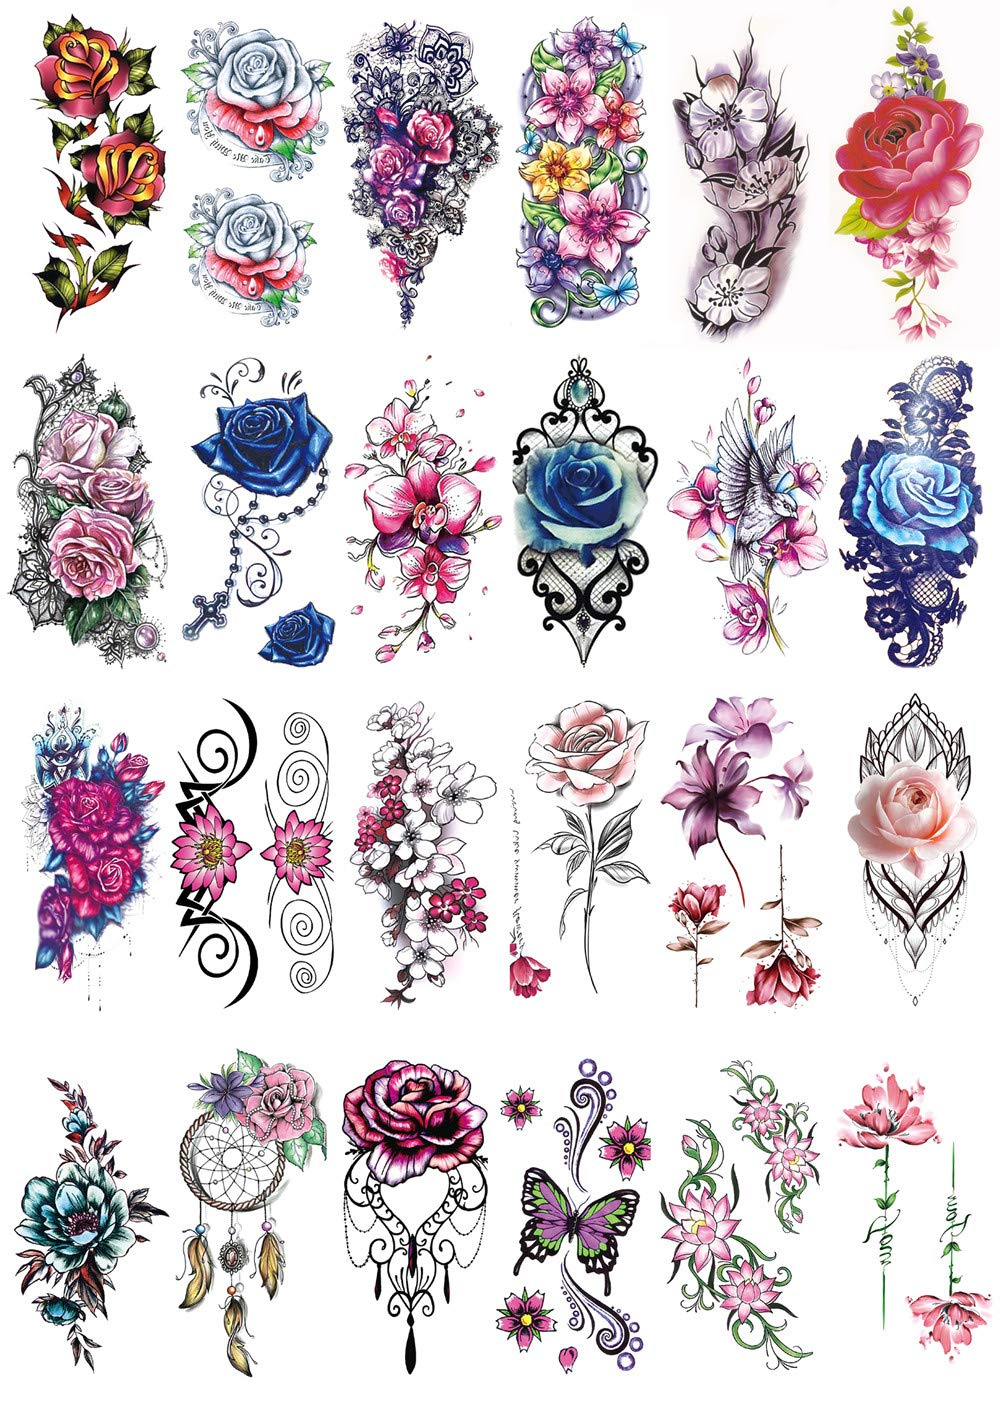 DaLin Large Temporary Tattoo Sleeves Fake Flower Tattoos for Women 24 Sheets (Colorful Flowers Collection 2)